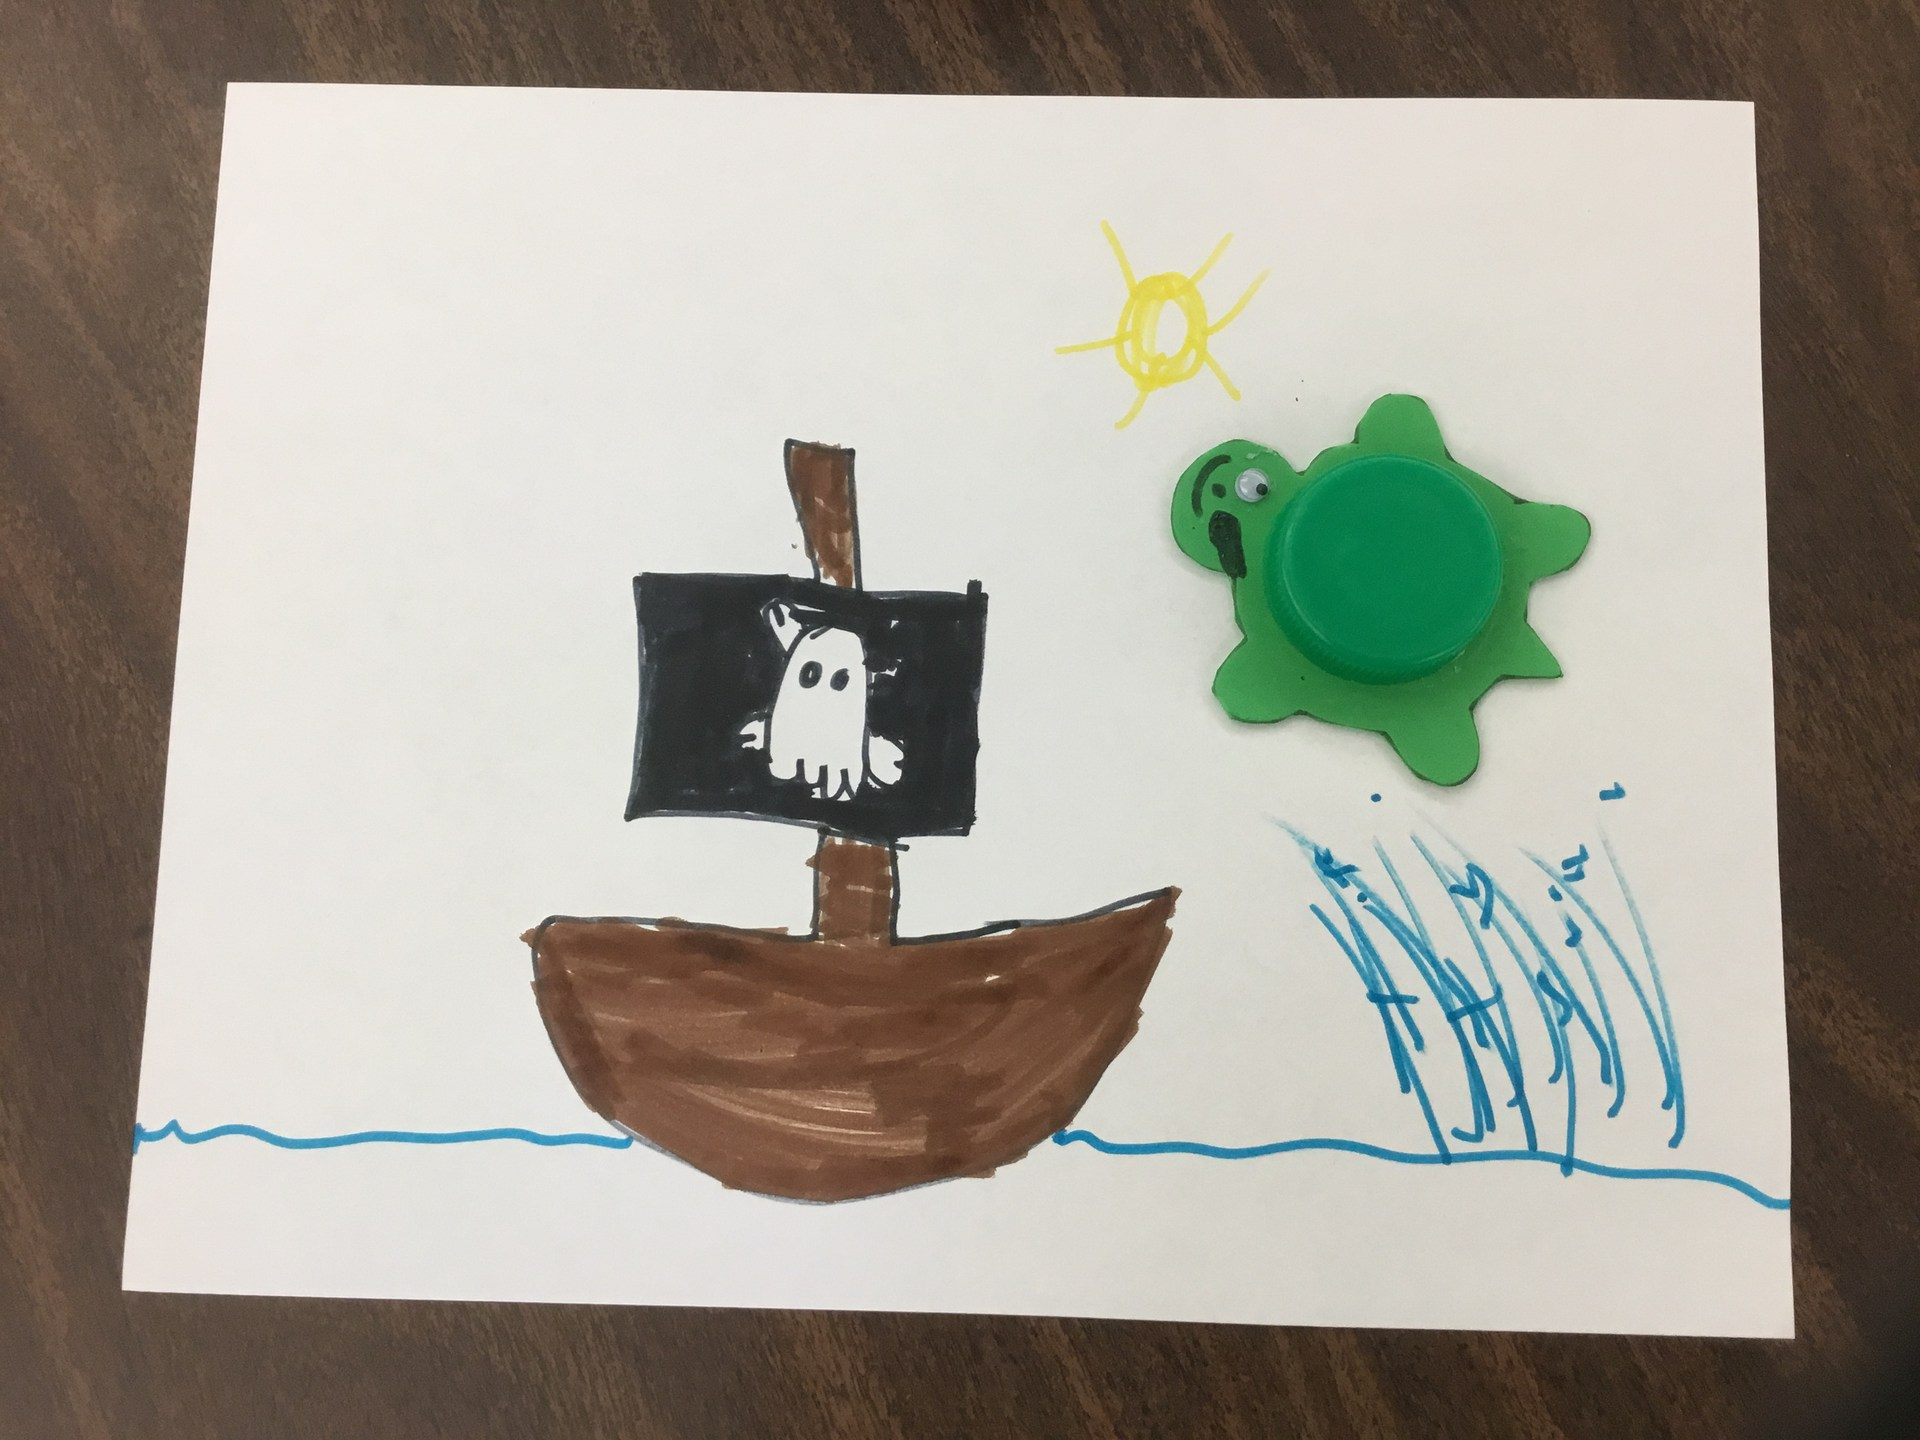 Pirate ship and turtle